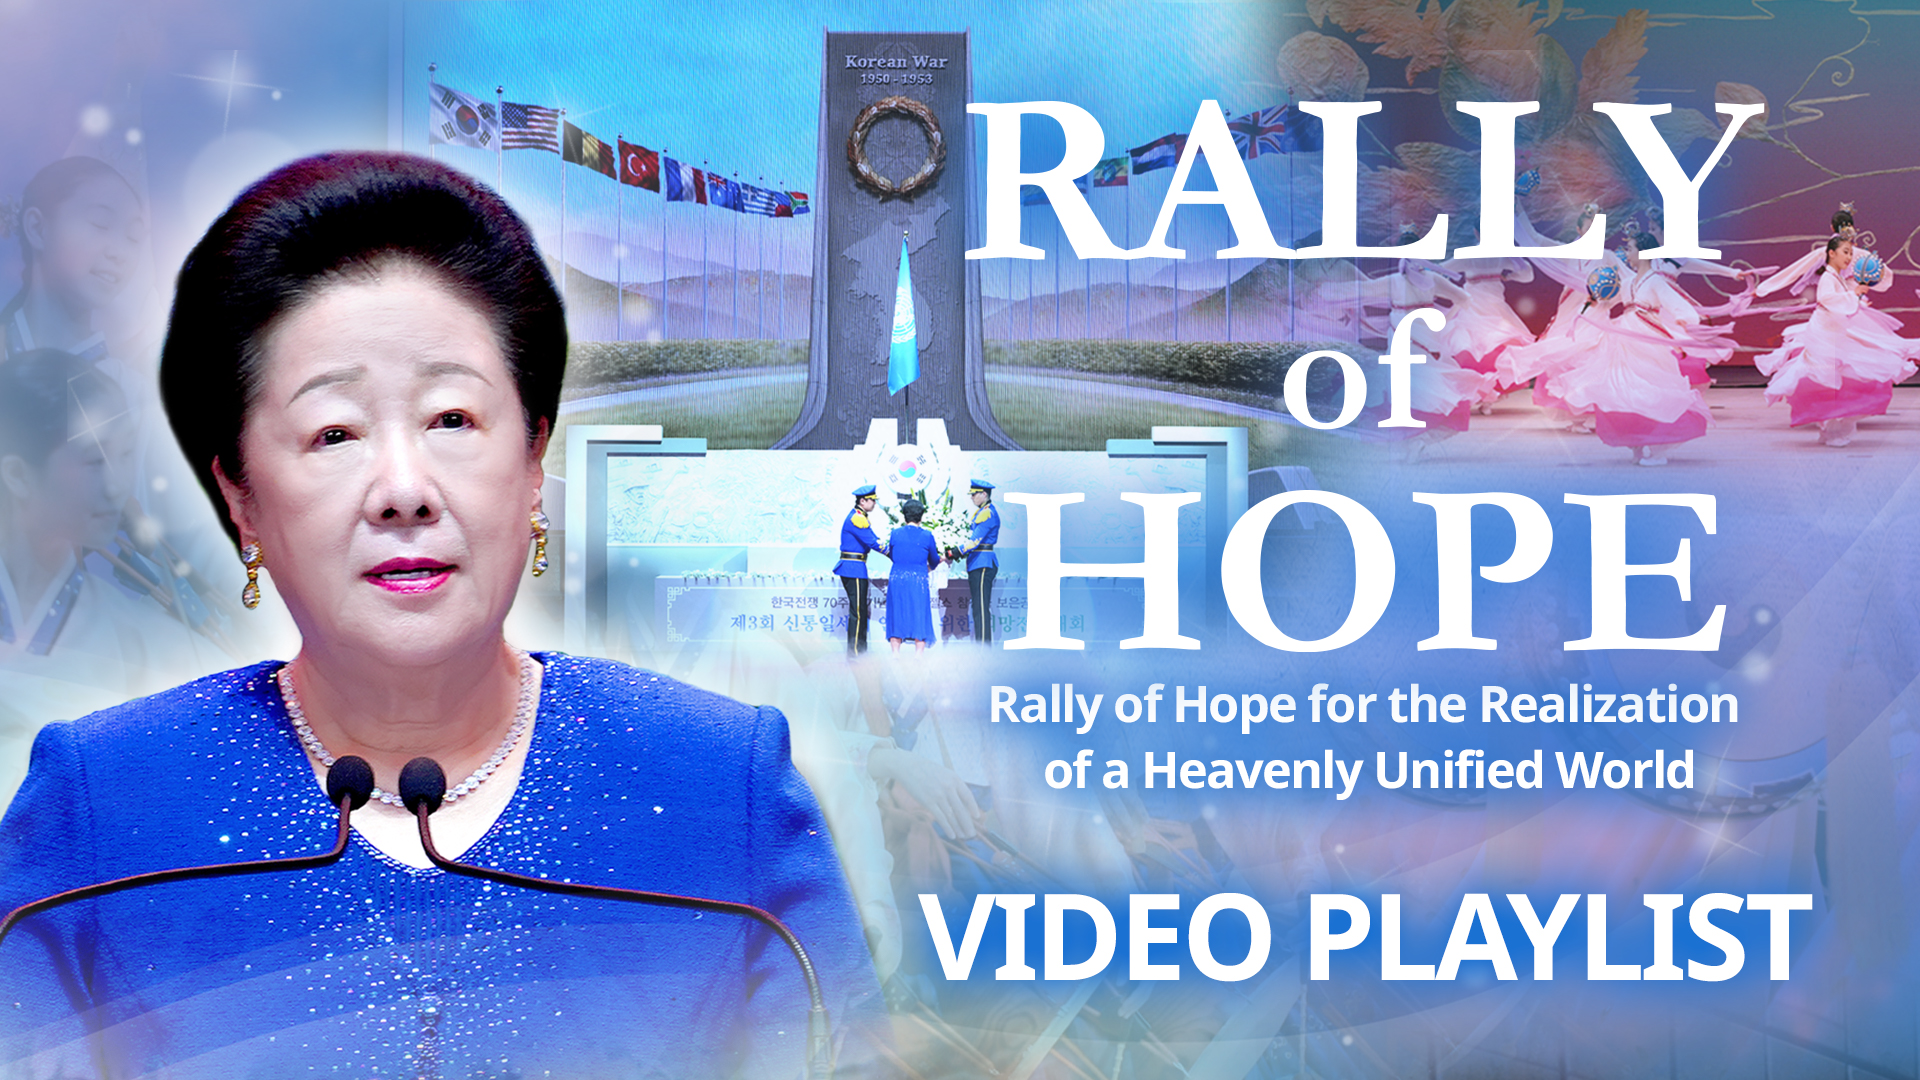 The 3rd One Million Rally of Hope for the Realization of a Heavenly Unified World